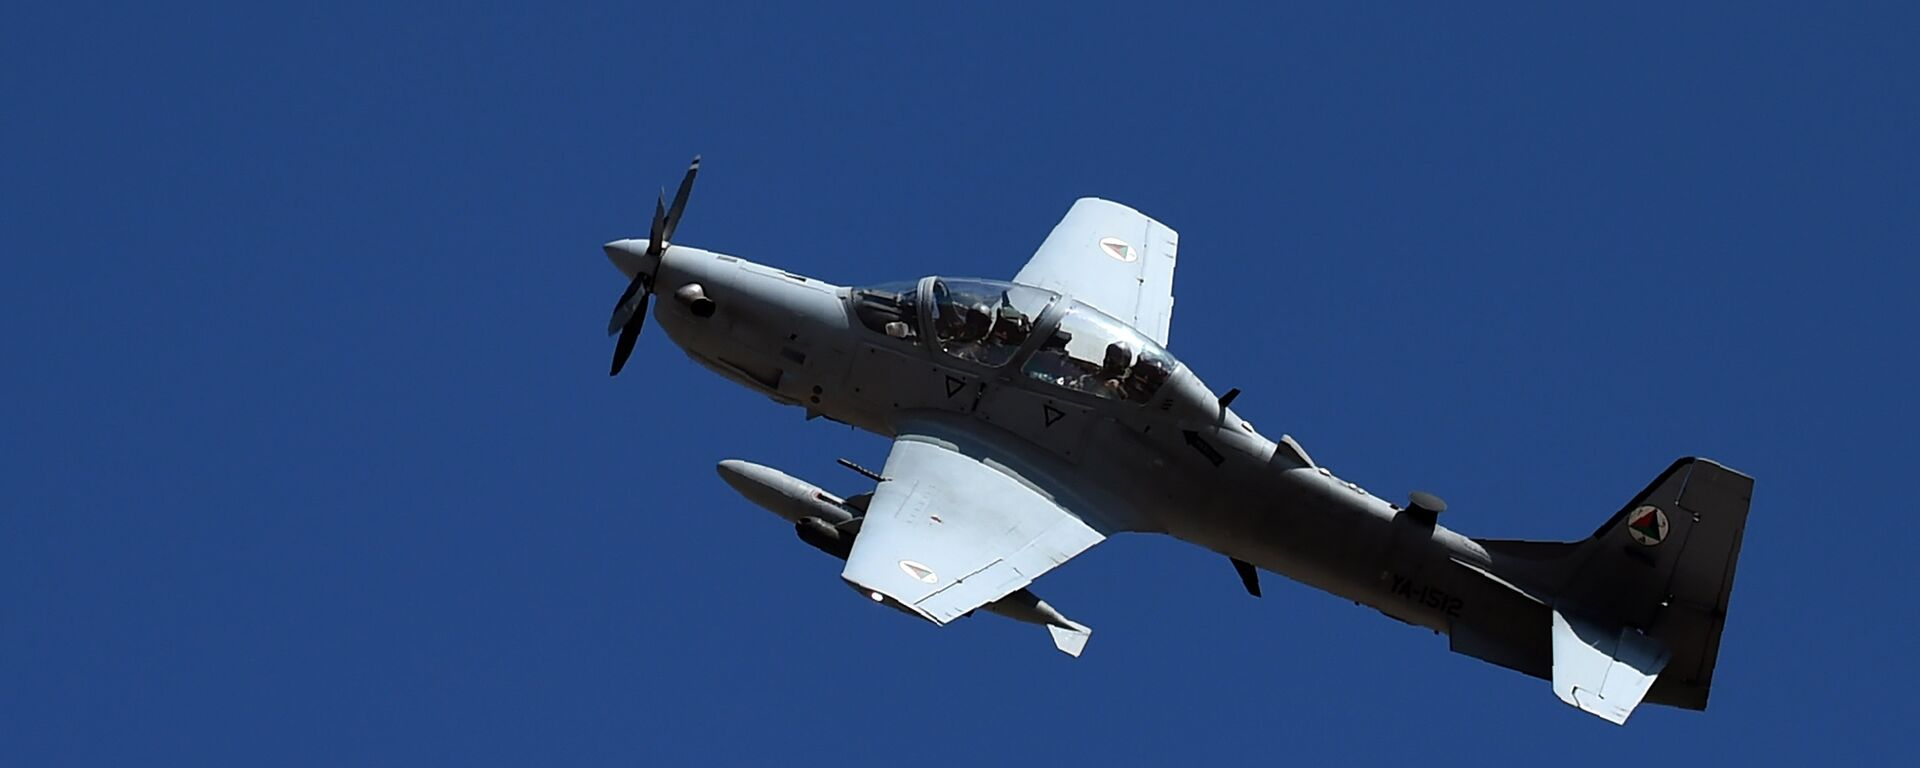 In this photograph taken on October 18, 2016, an Afghan Air Force Embraer A-29 Super Tucano aircraft flies during an airstrike training mission on the outskirts of Logar province - Sputnik International, 1920